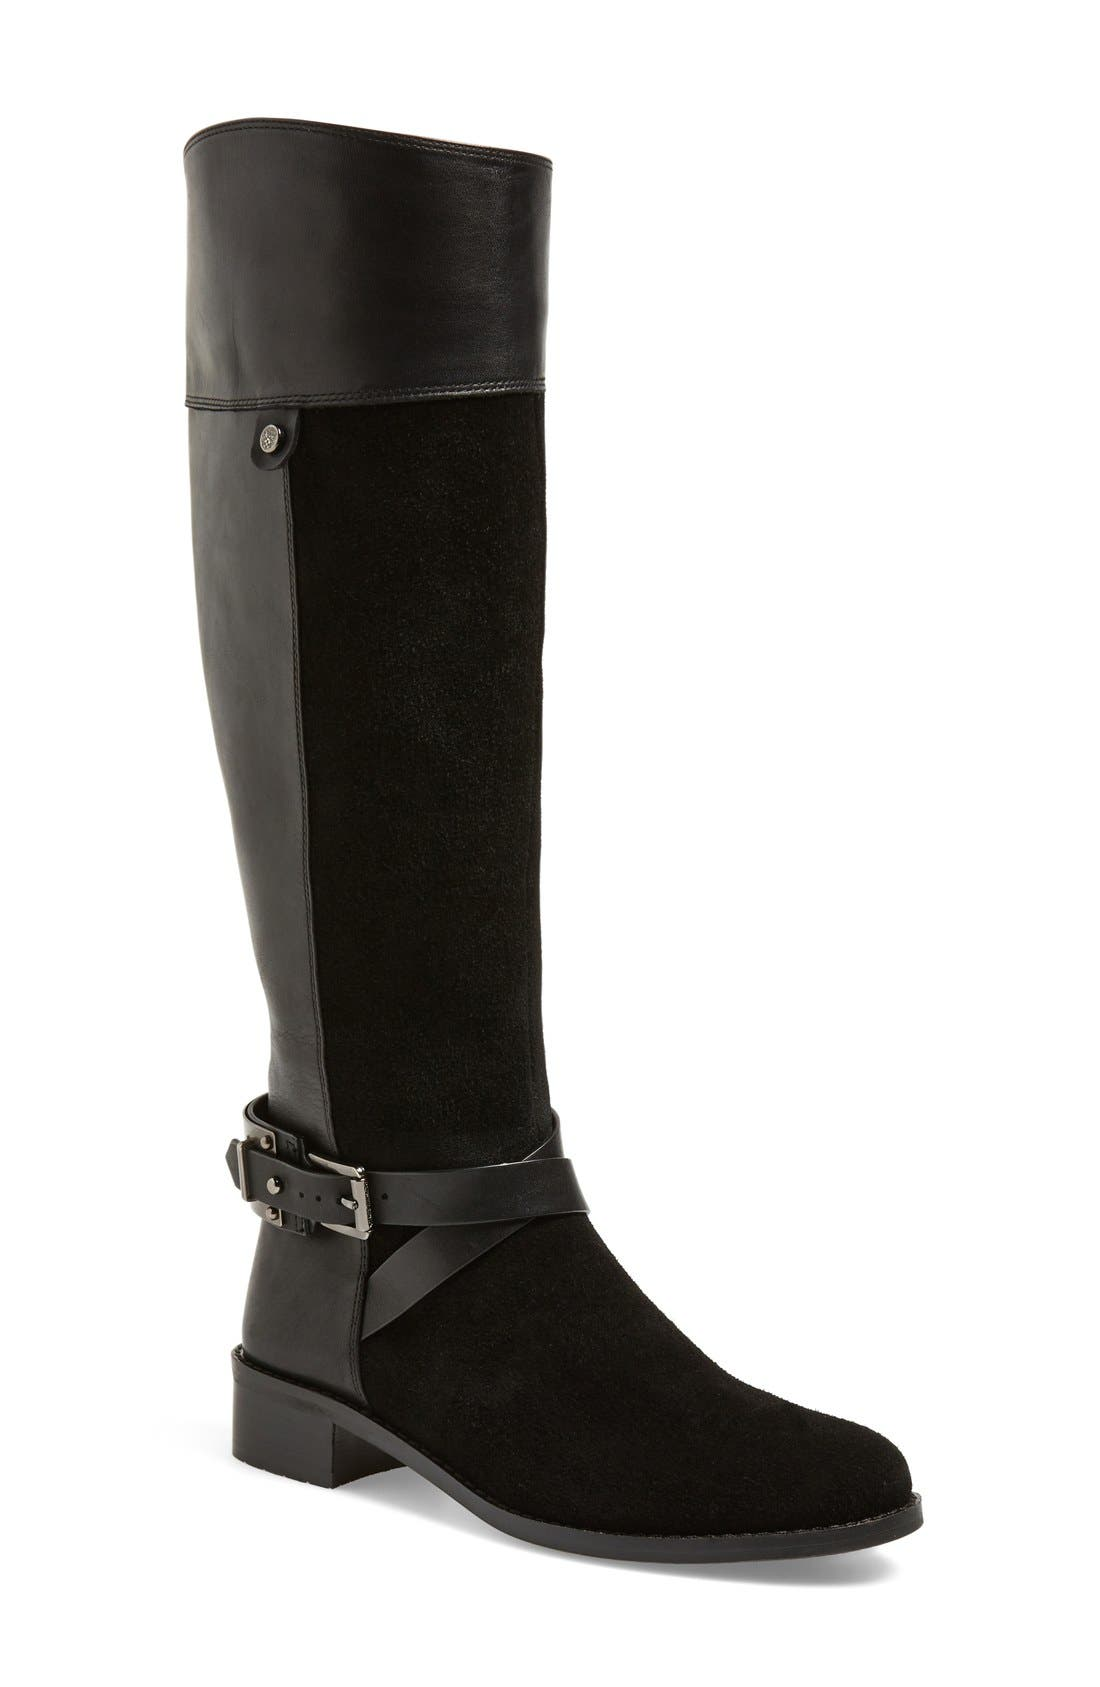 Alternate Image 1 Selected - Vince Camuto 'Jaran' Riding Boot (Women)